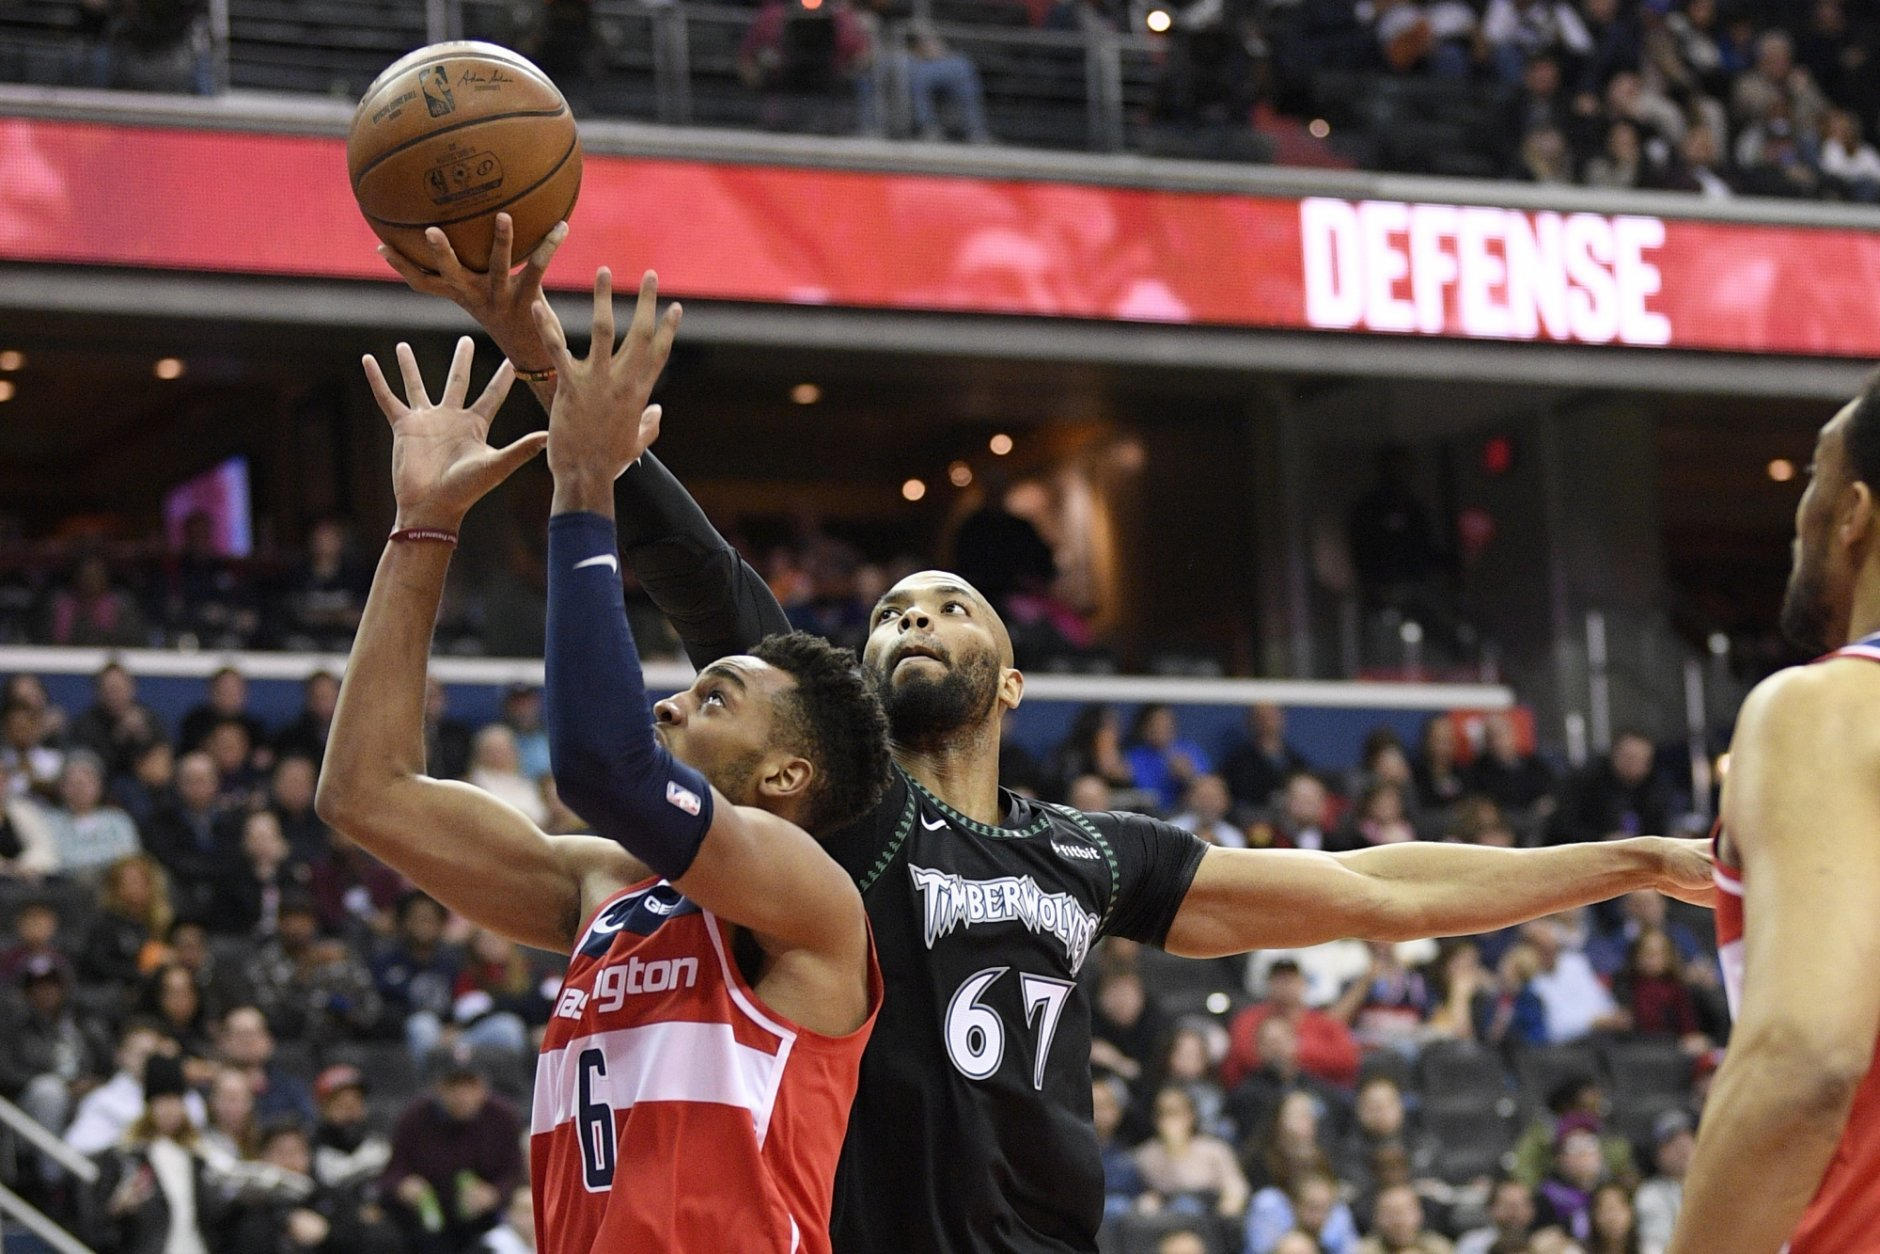 Minnesota Timberwolves forward Taj Gibson (67) battles for the ball against Washington Wizards forward Troy Brown Jr. (6) during the first half of an NBA basketball game, Sunday, March 3, 2019, in Washington. (AP Photo/Nick Wass)